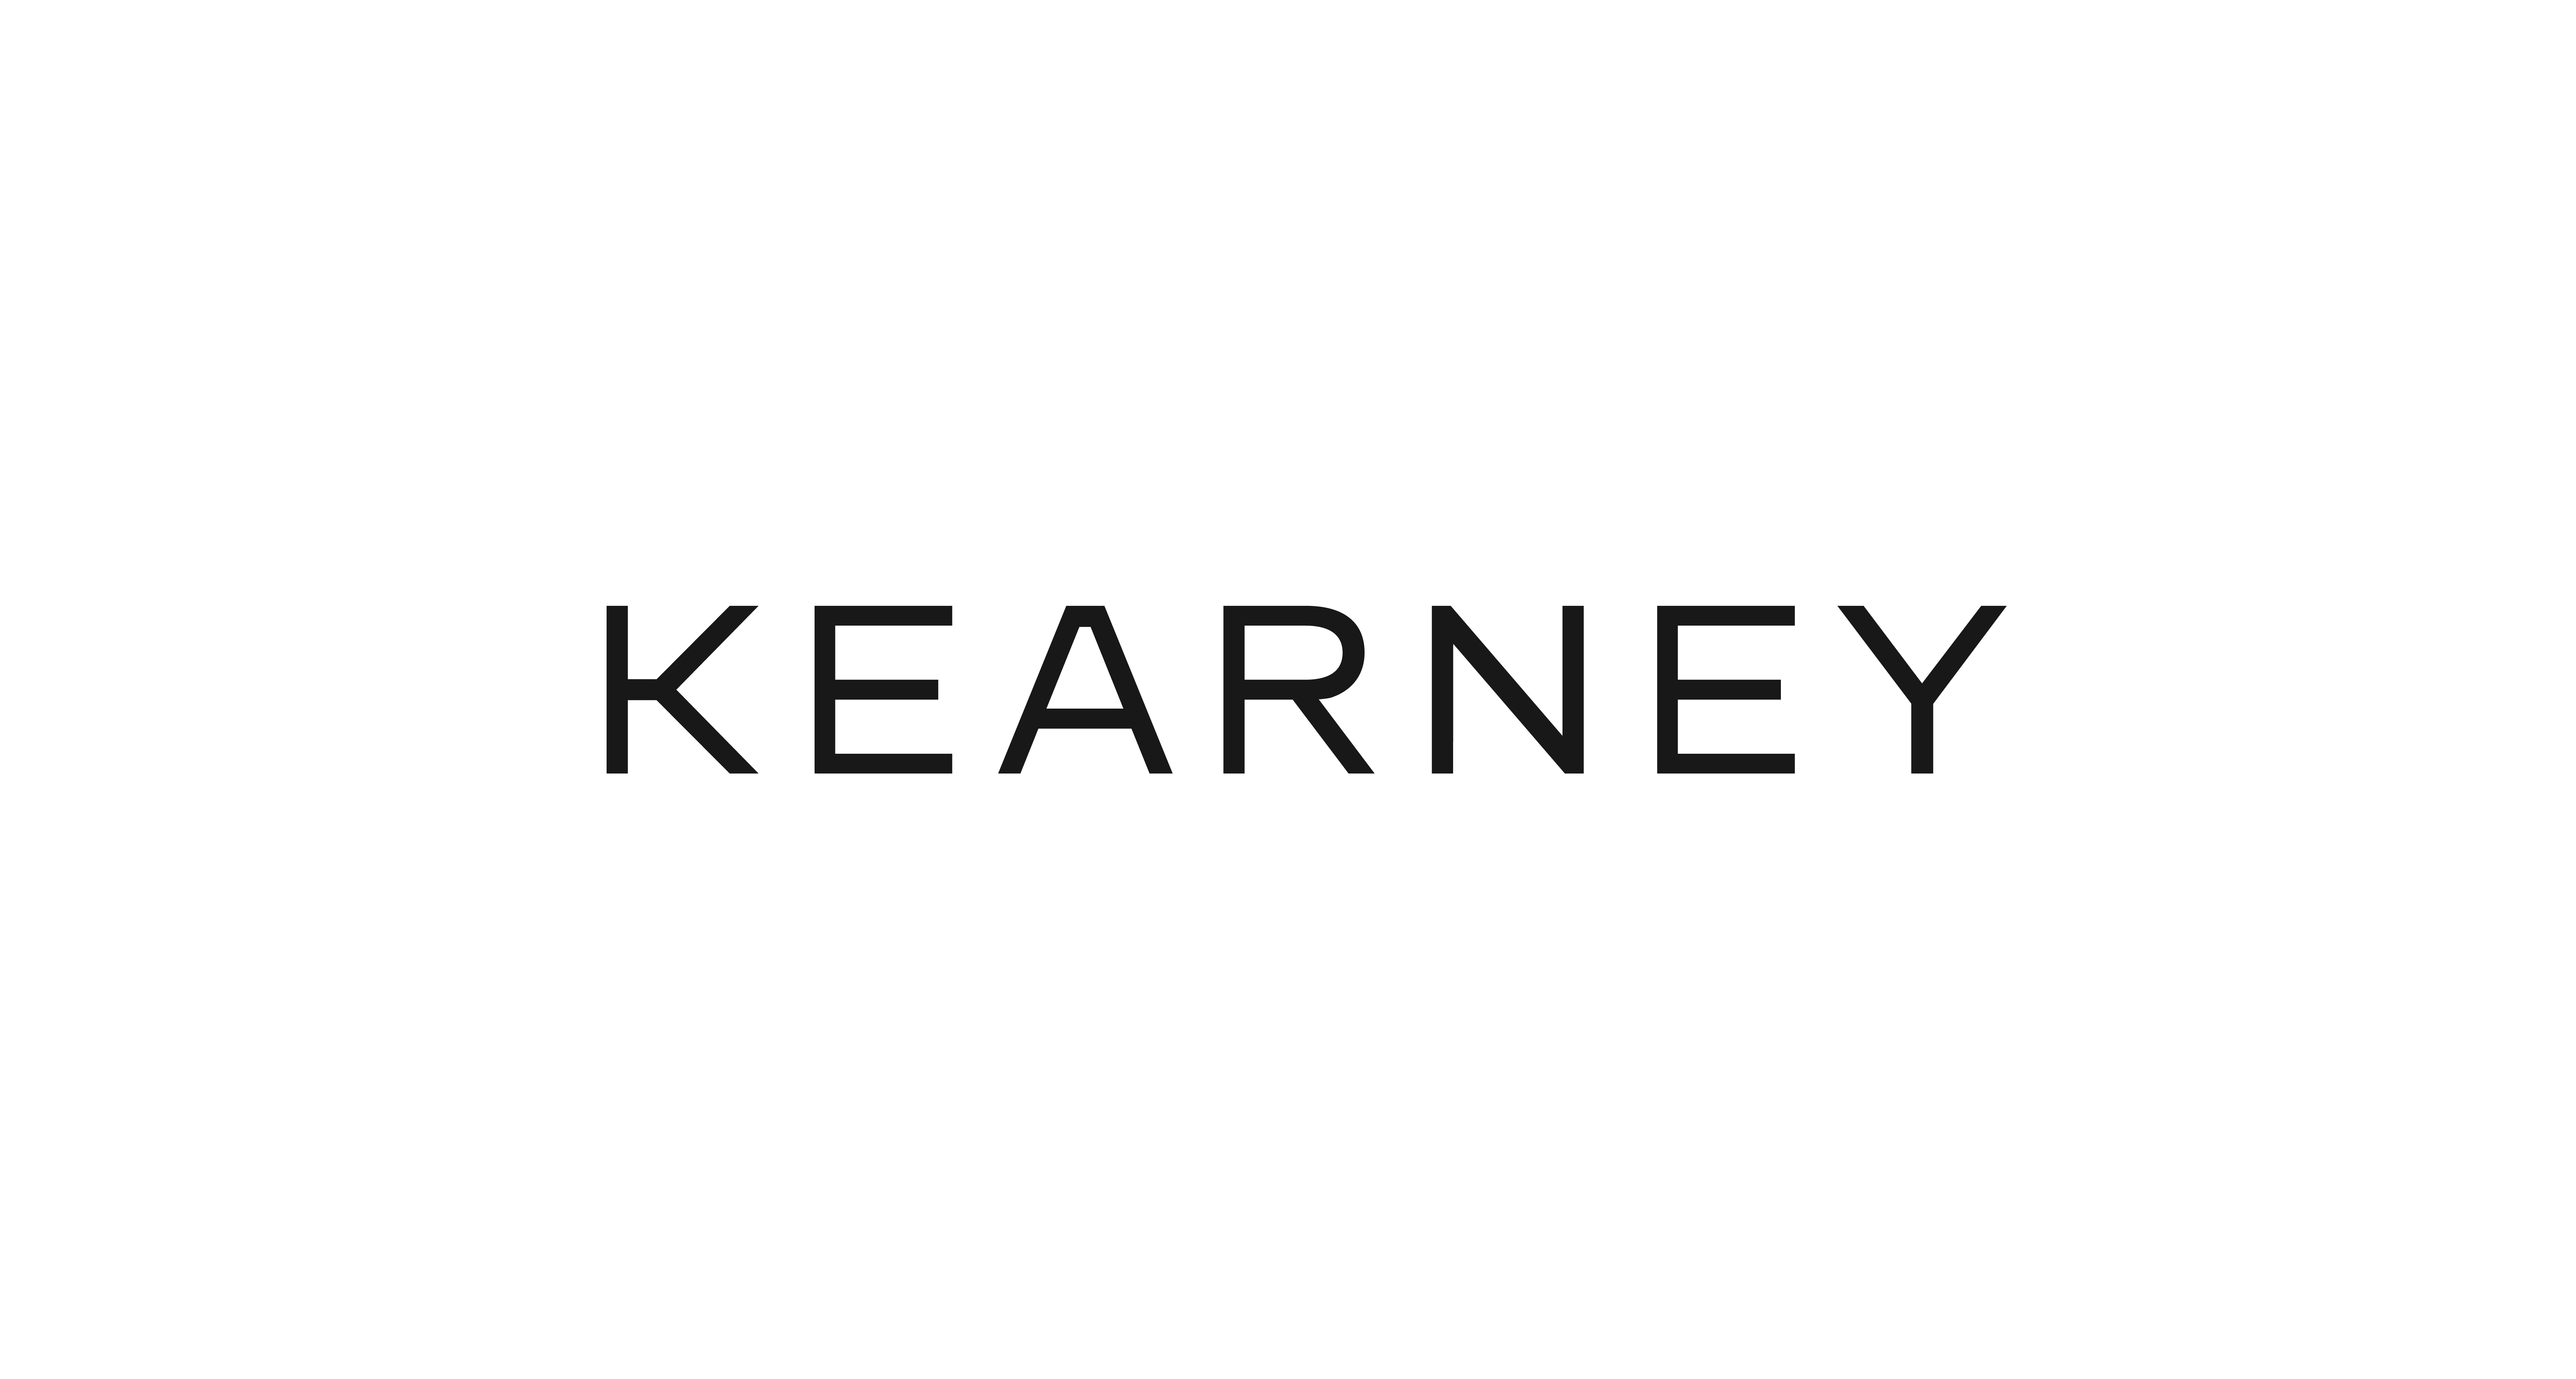 European Retail Banks Need to Reduce their Costs by over £25 Billion to Improve Profitability Following the Pandemic, According to Kearney Research